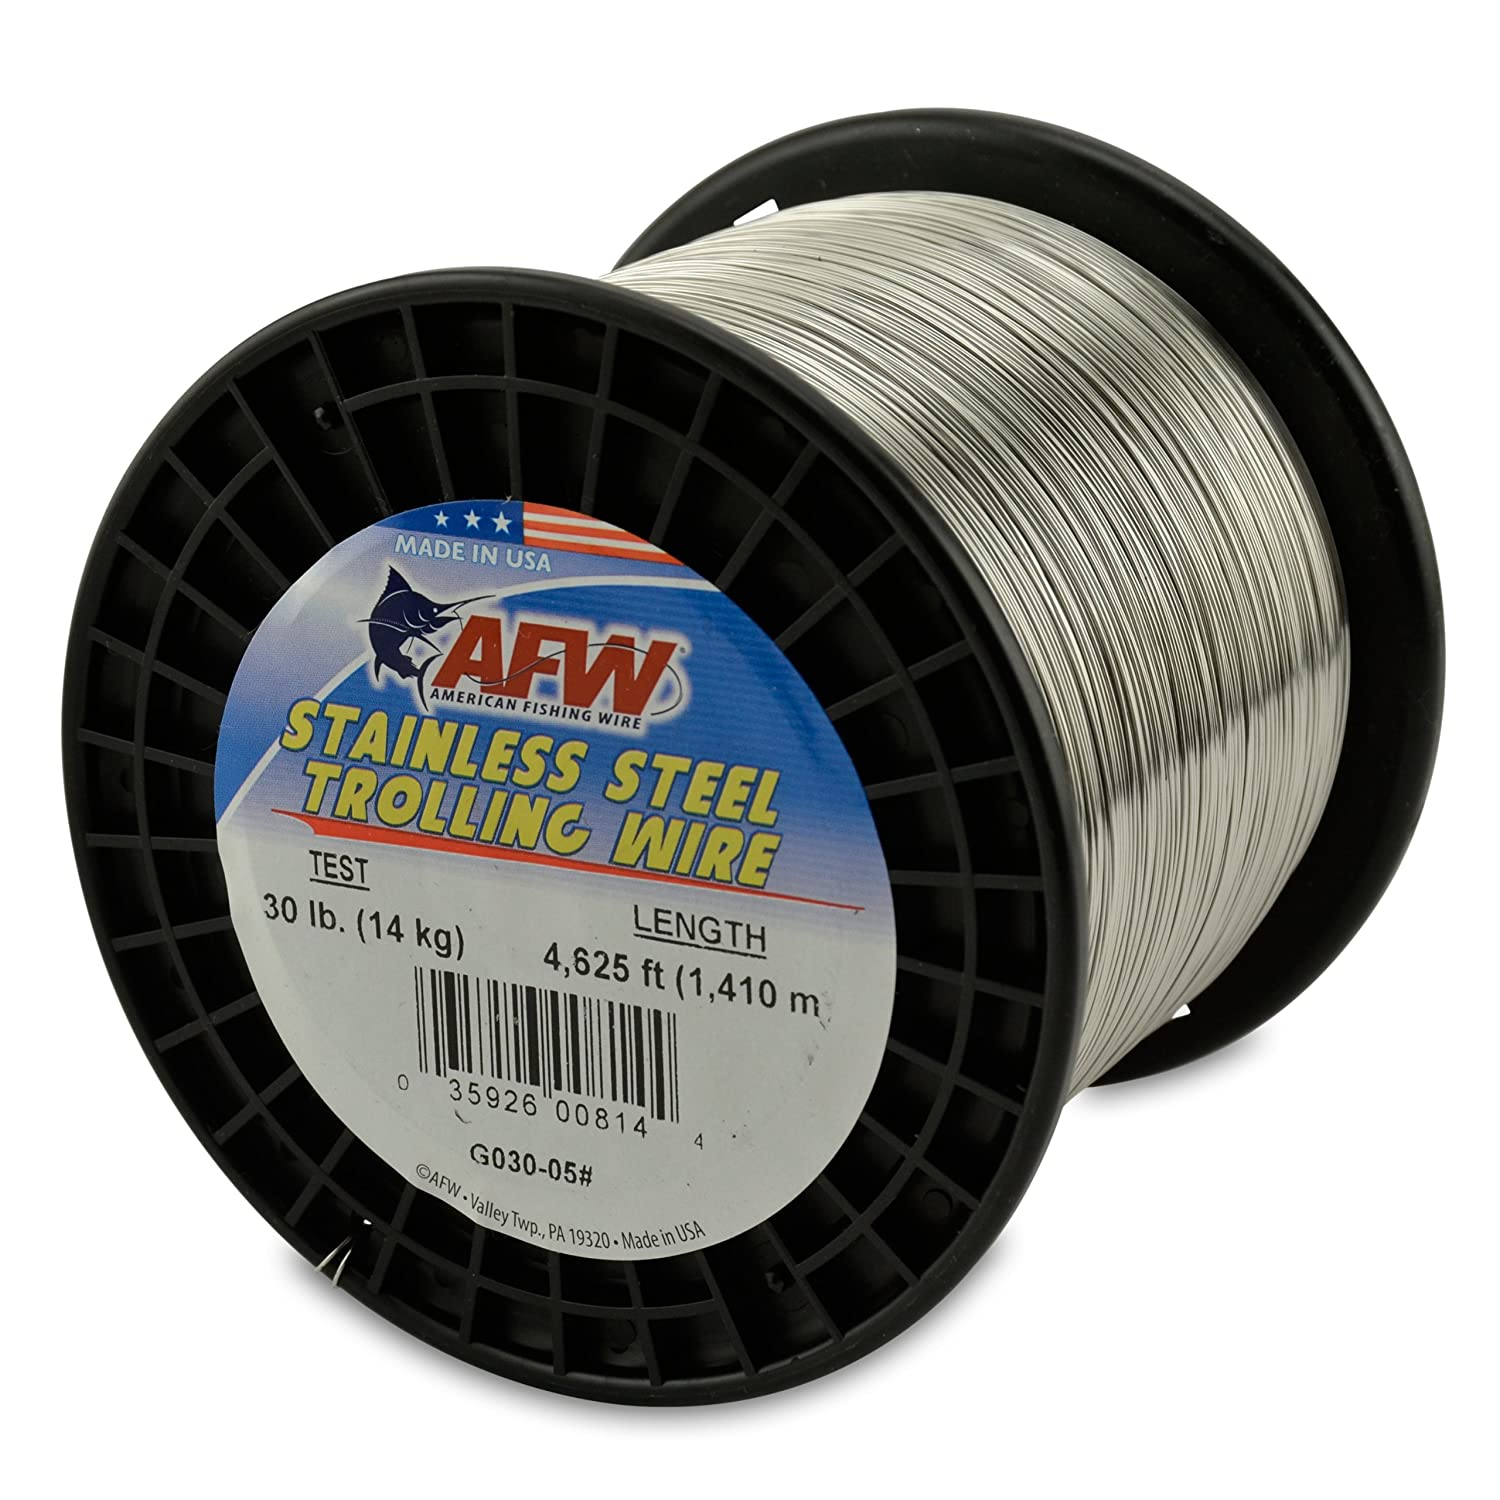 American Fishing Wire T304 Stainless Steel Trolling Wire, 30-Pound/4625-Feet G030-05#